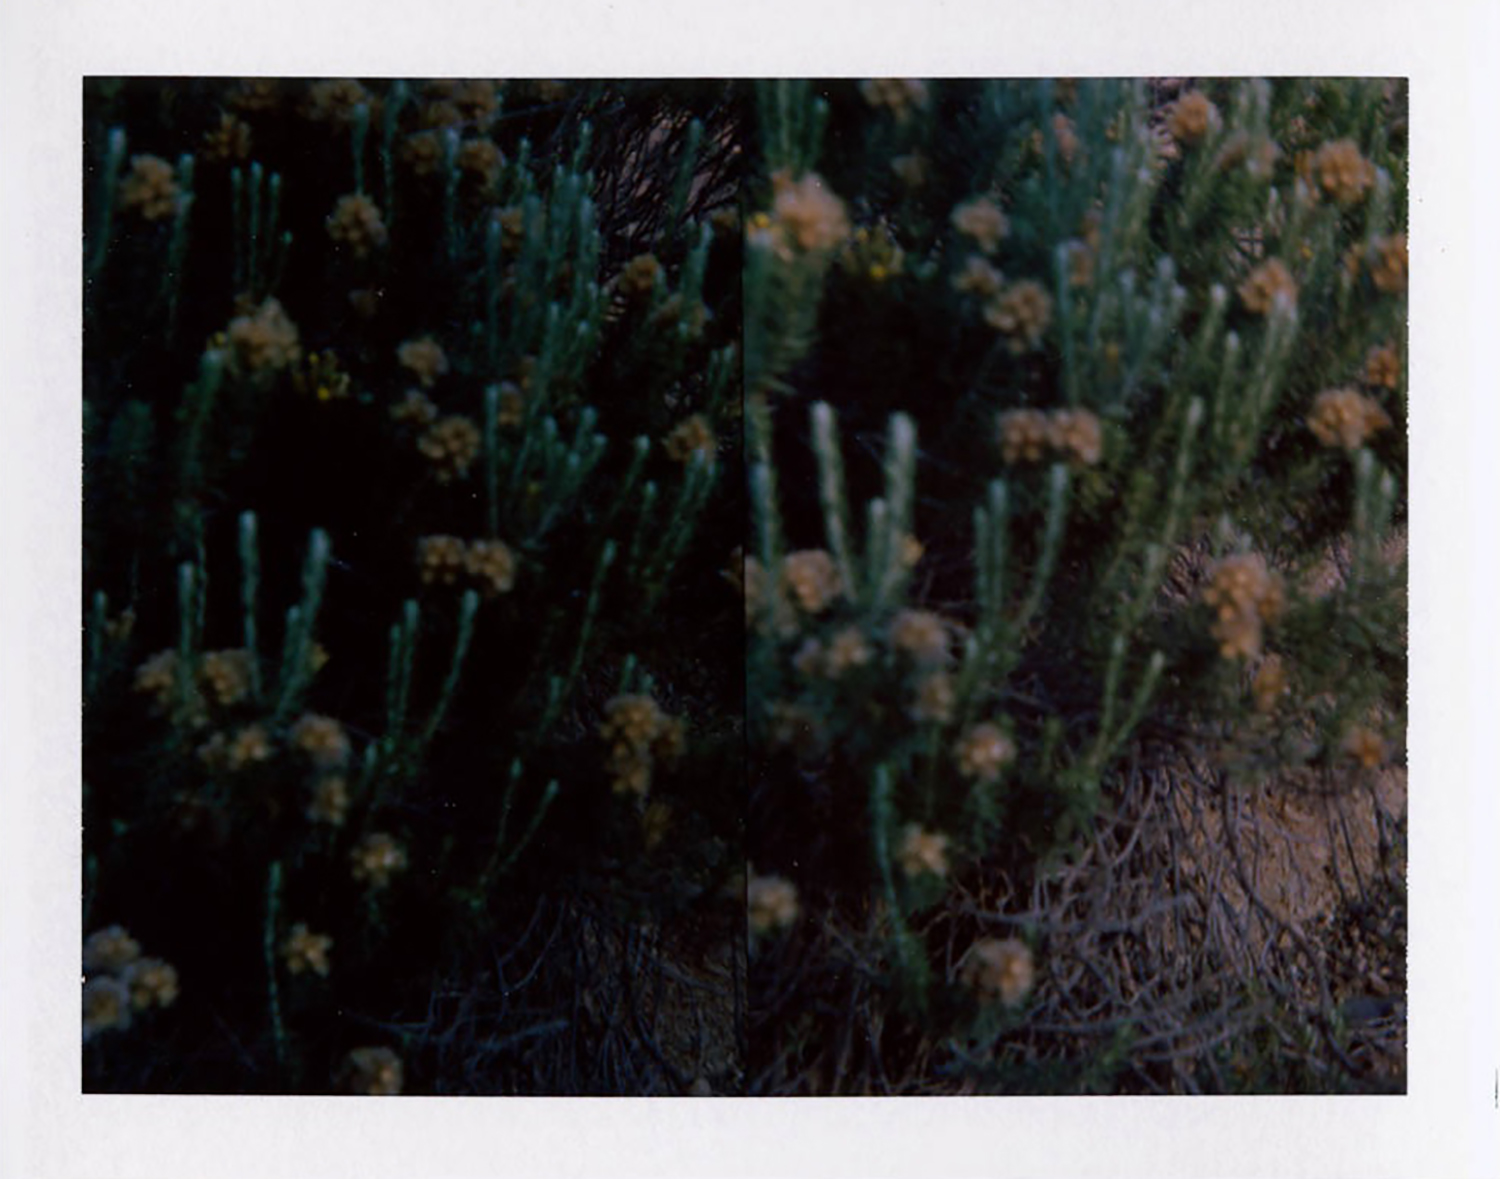 I.D.006, The Polaroid Revolutionary Workers, 2013, Polaroid Picture, 107mm x 86mm